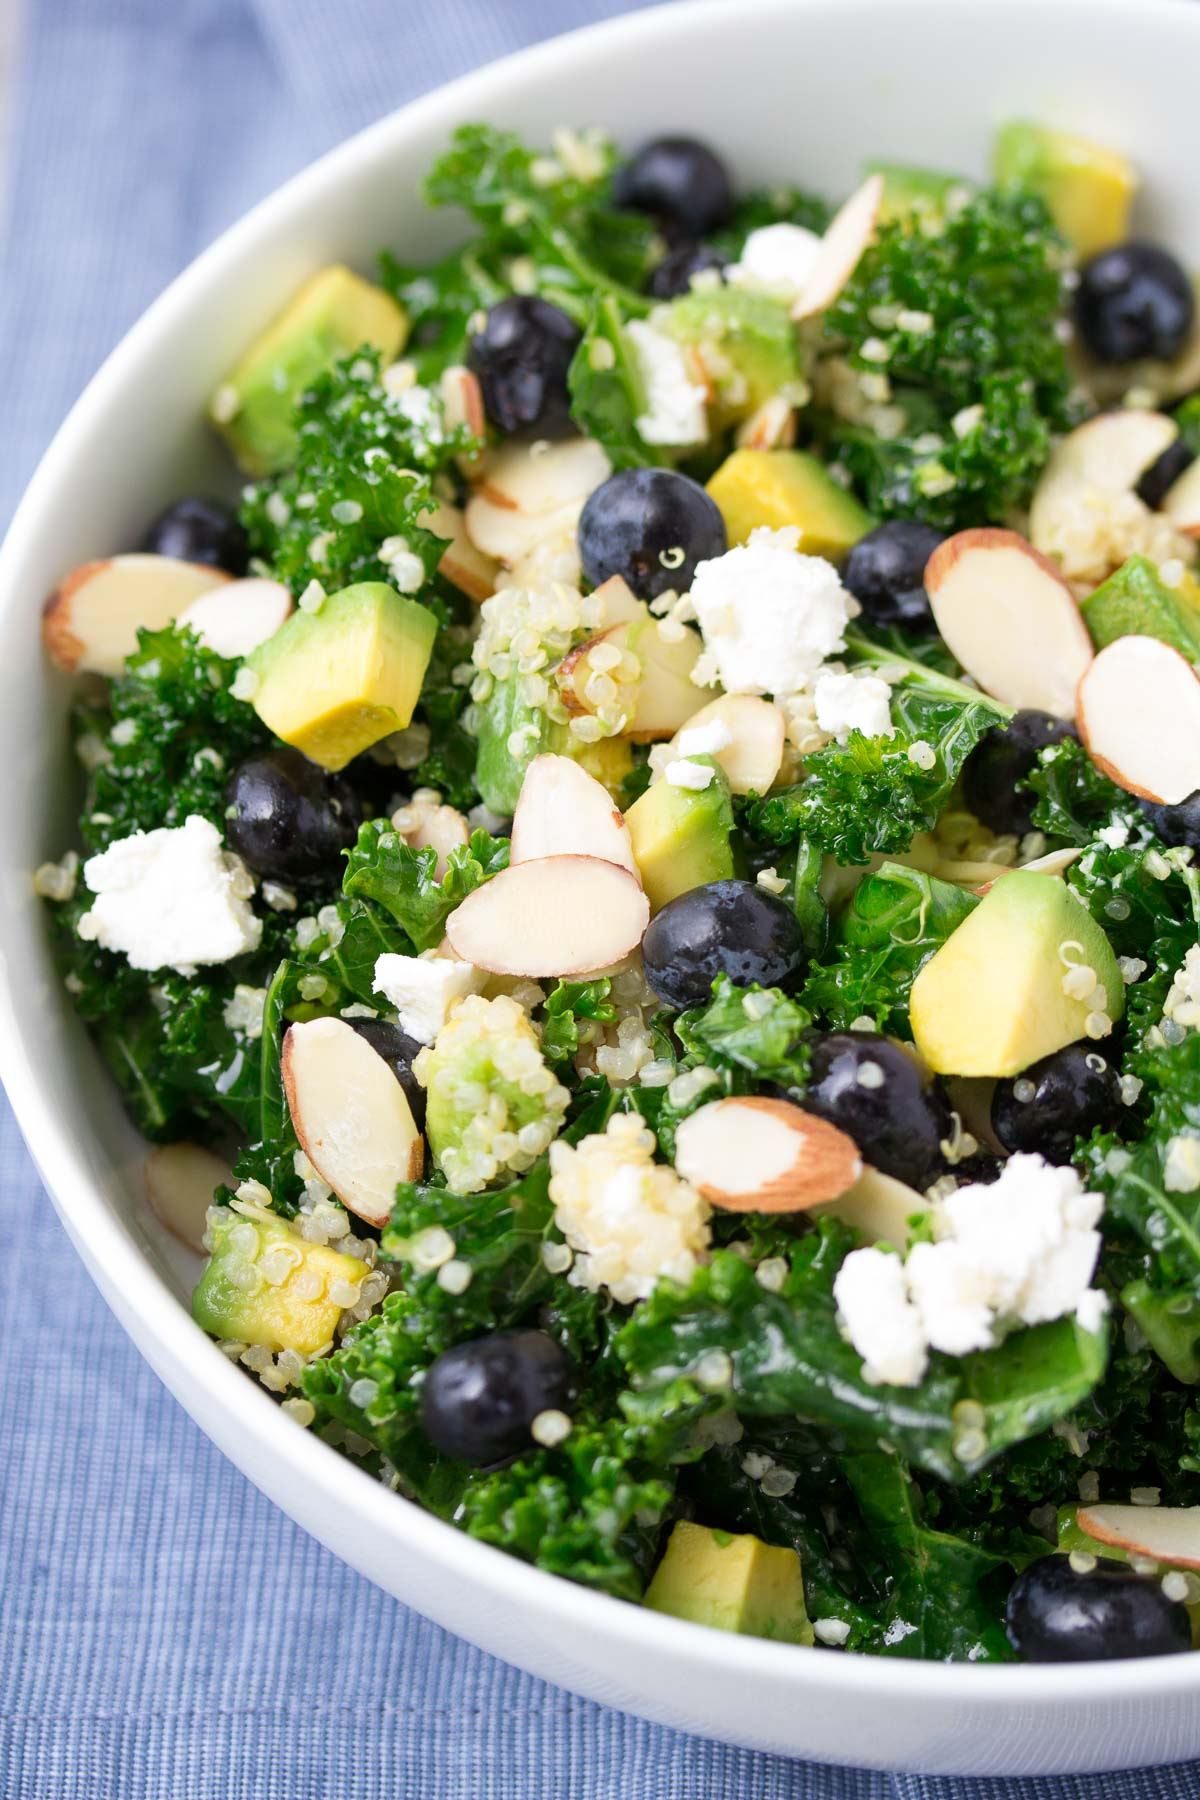 tossed kale quinoa salad with avocado, blueberries, goat cheese and almonds